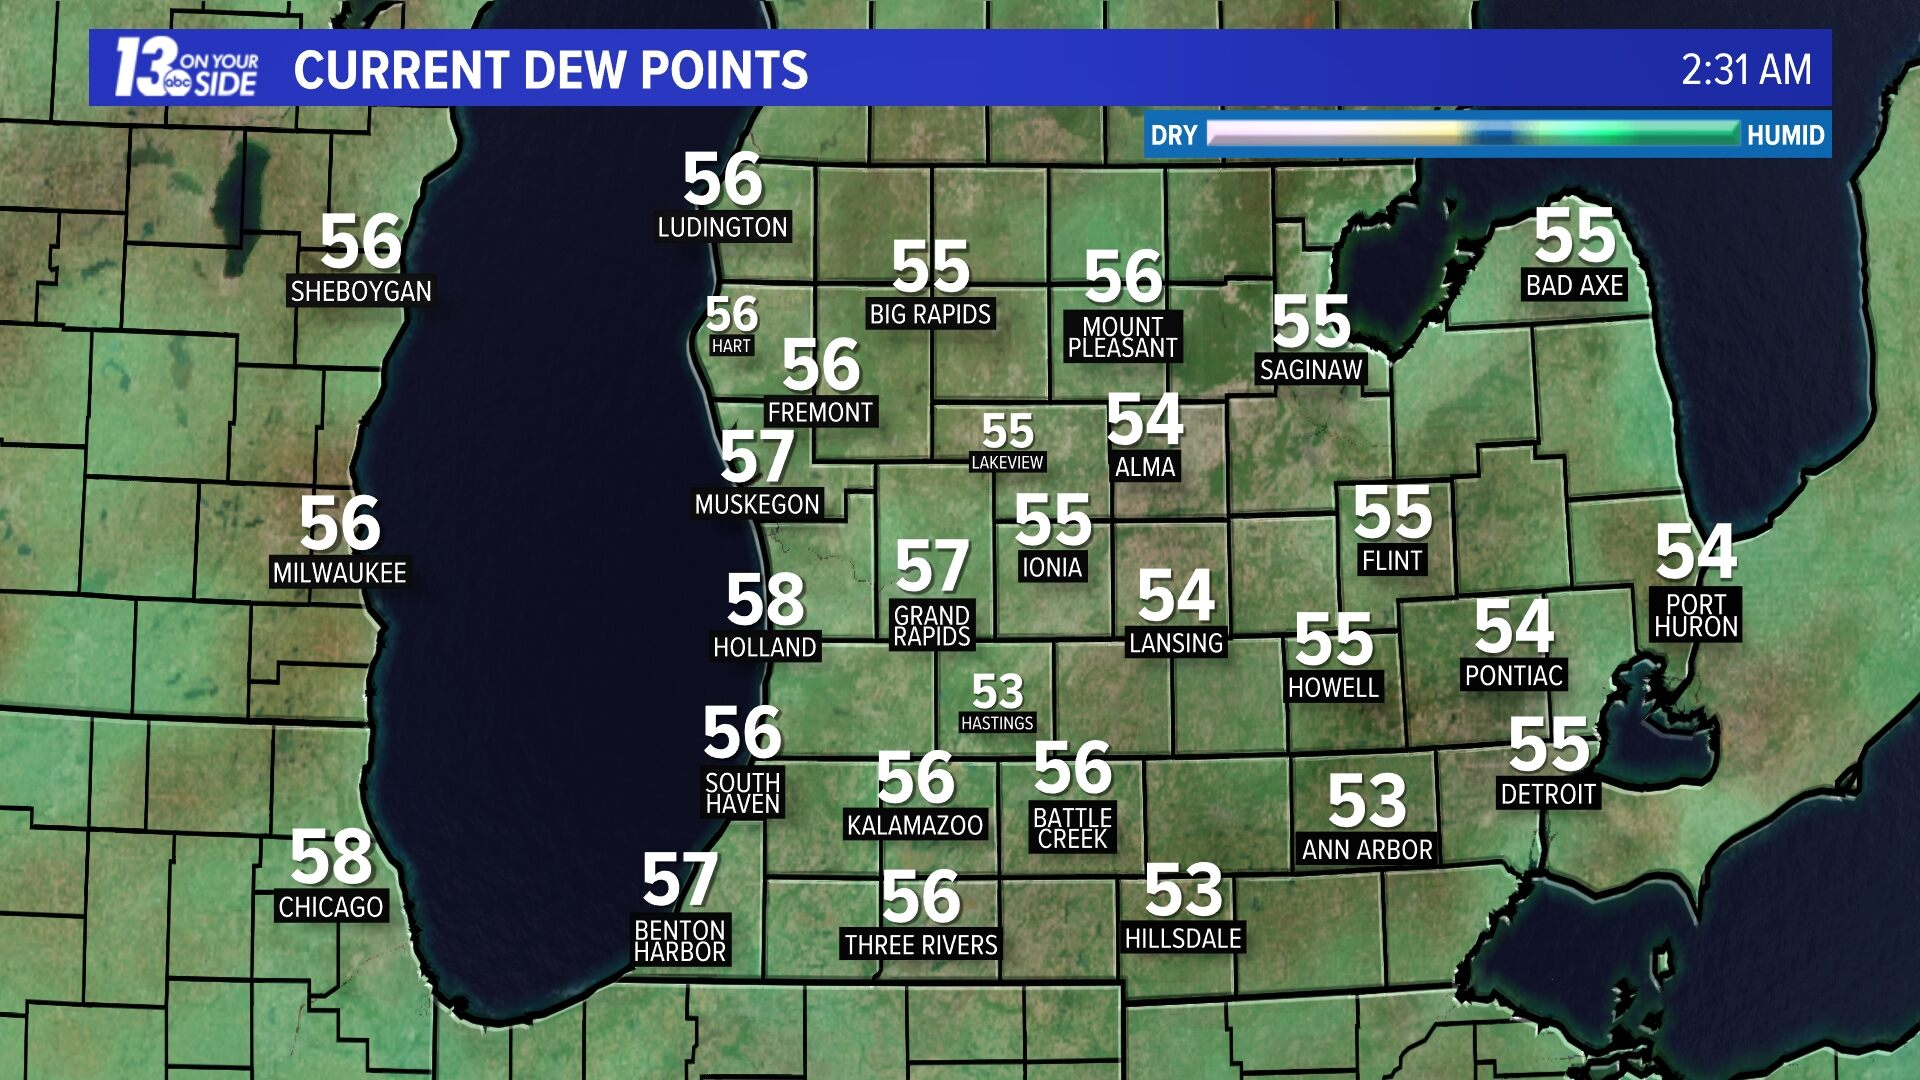 Current Dewpoints